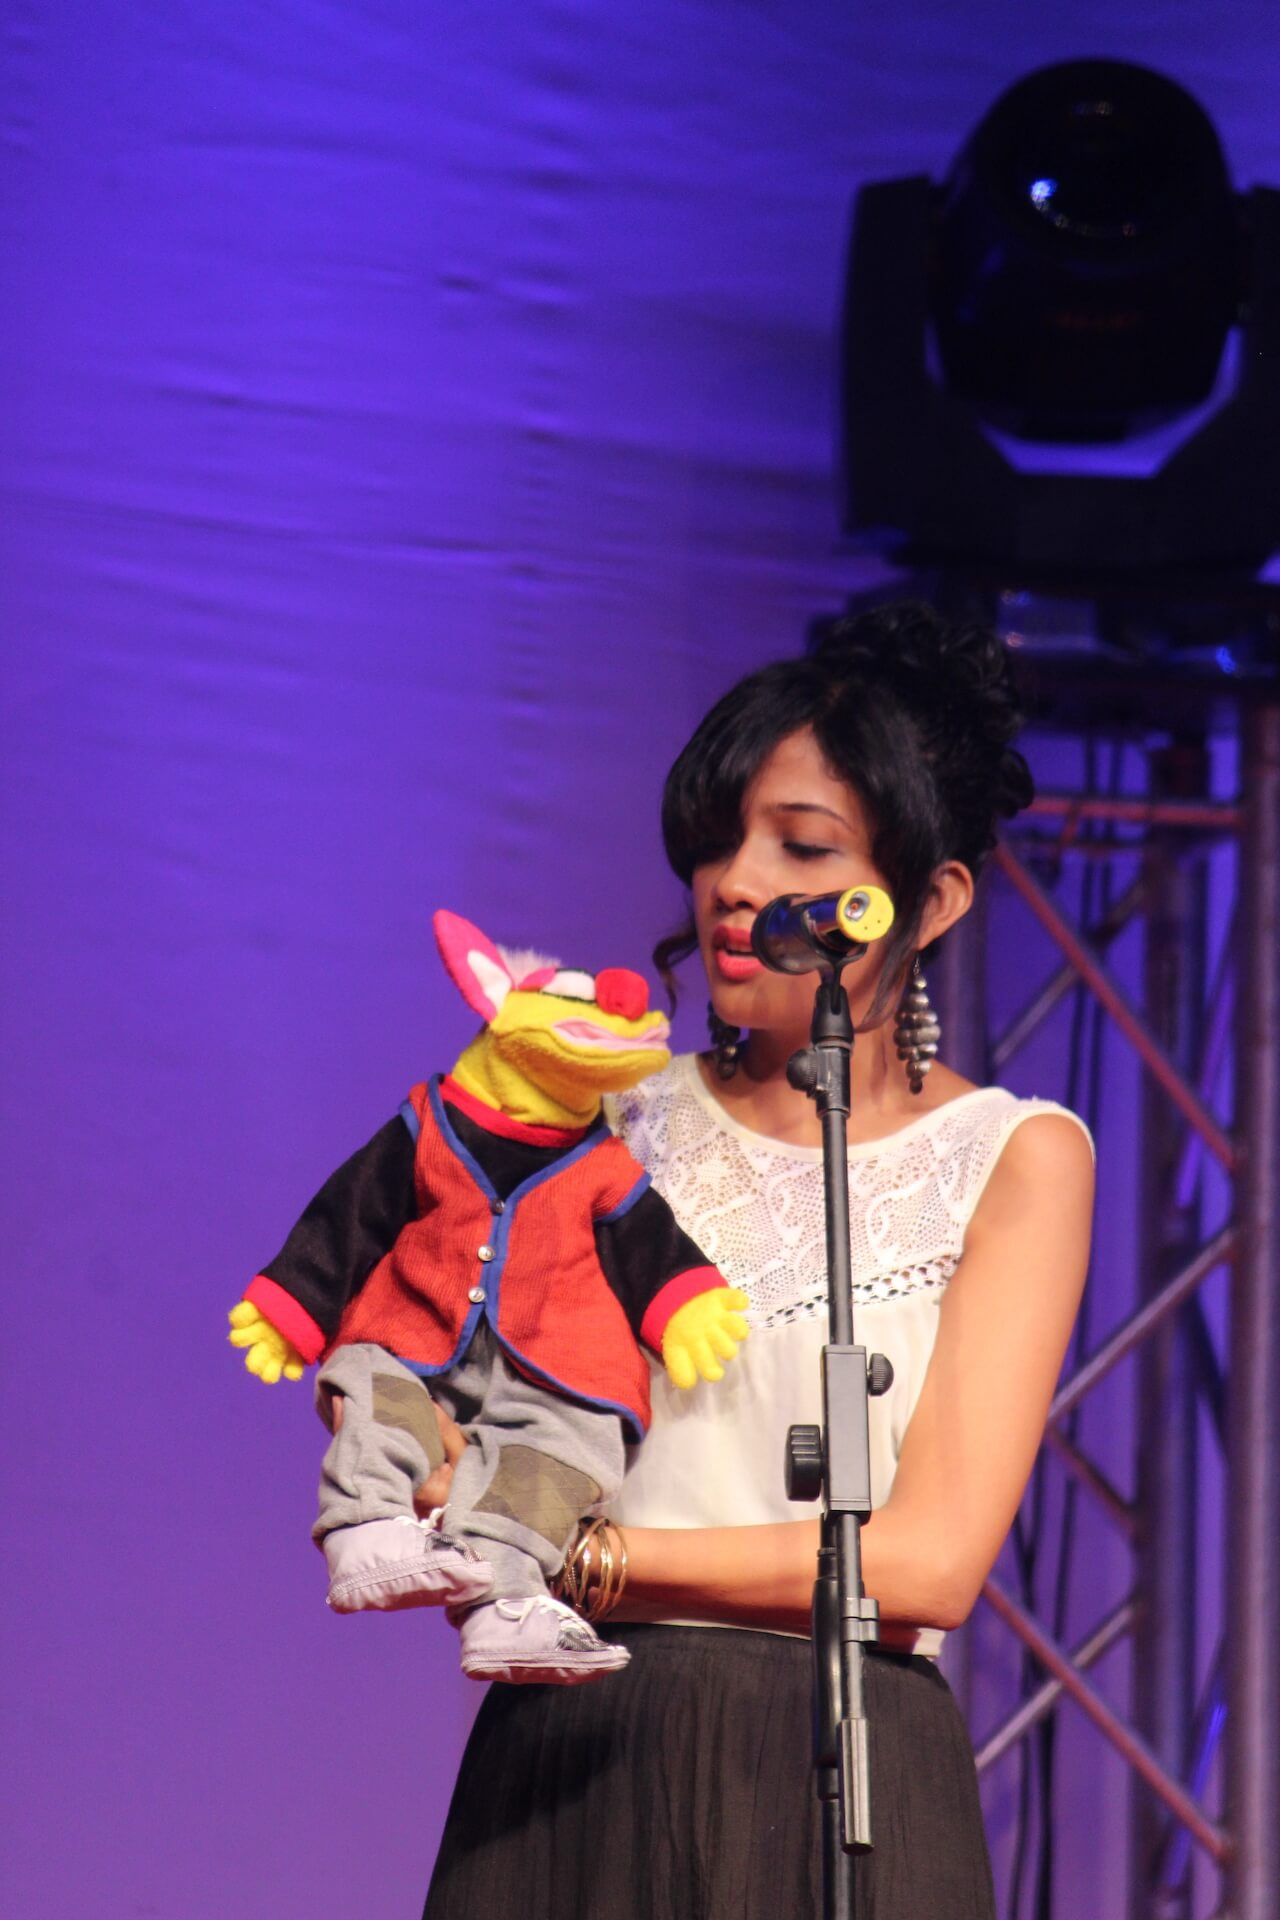 Singing Ventriloquism with Yoko